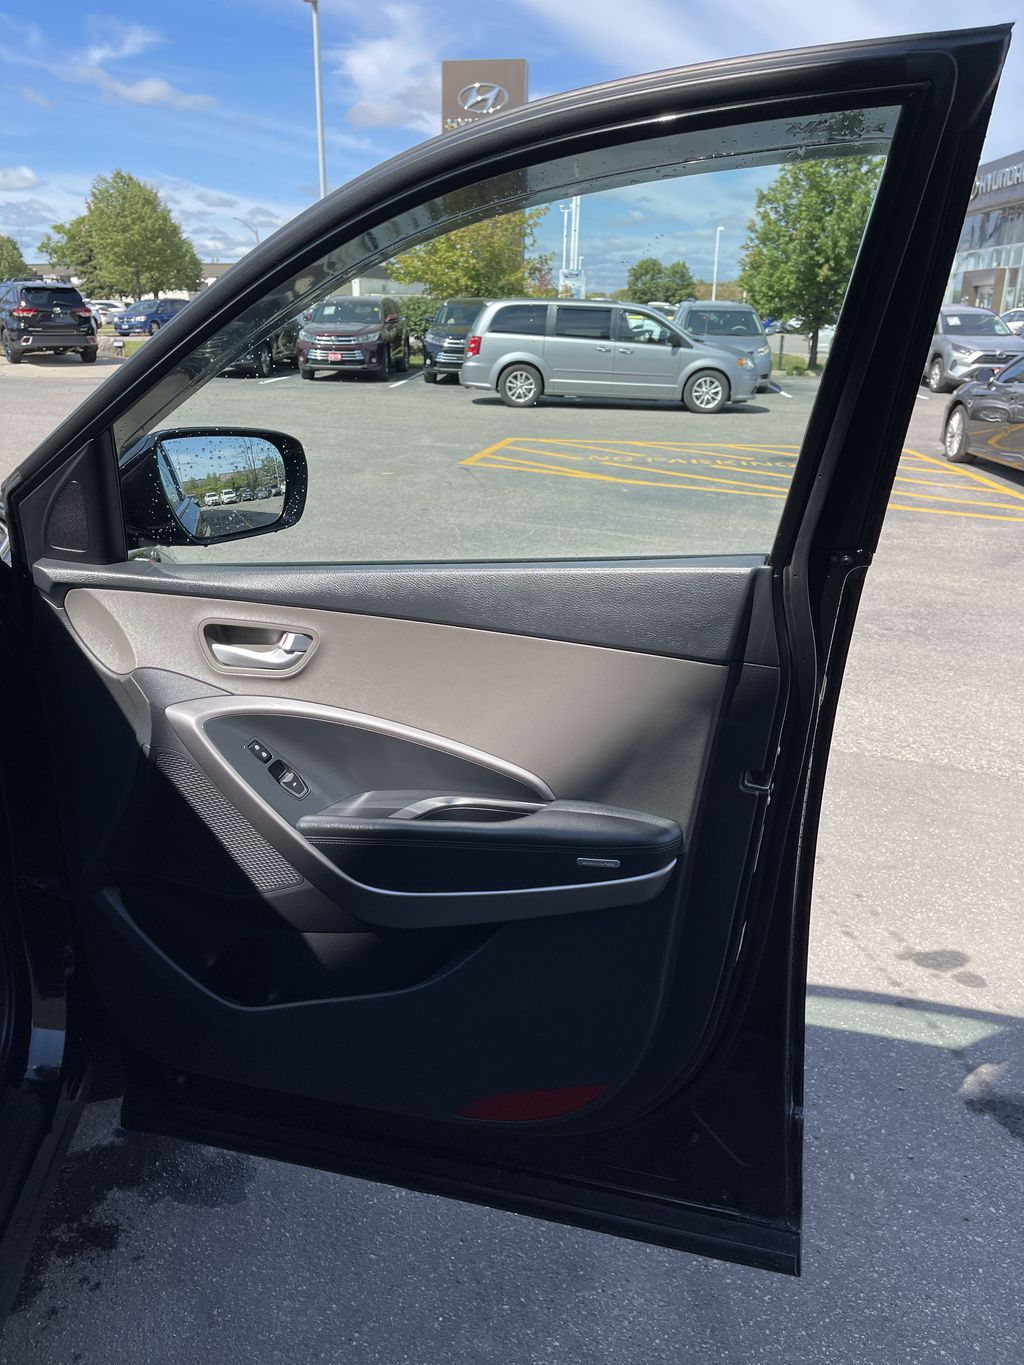 Silver[Moonstone Silver] 2015 Hyundai Santa Fe cleaned Central Dash Options Photo in Brampton ON